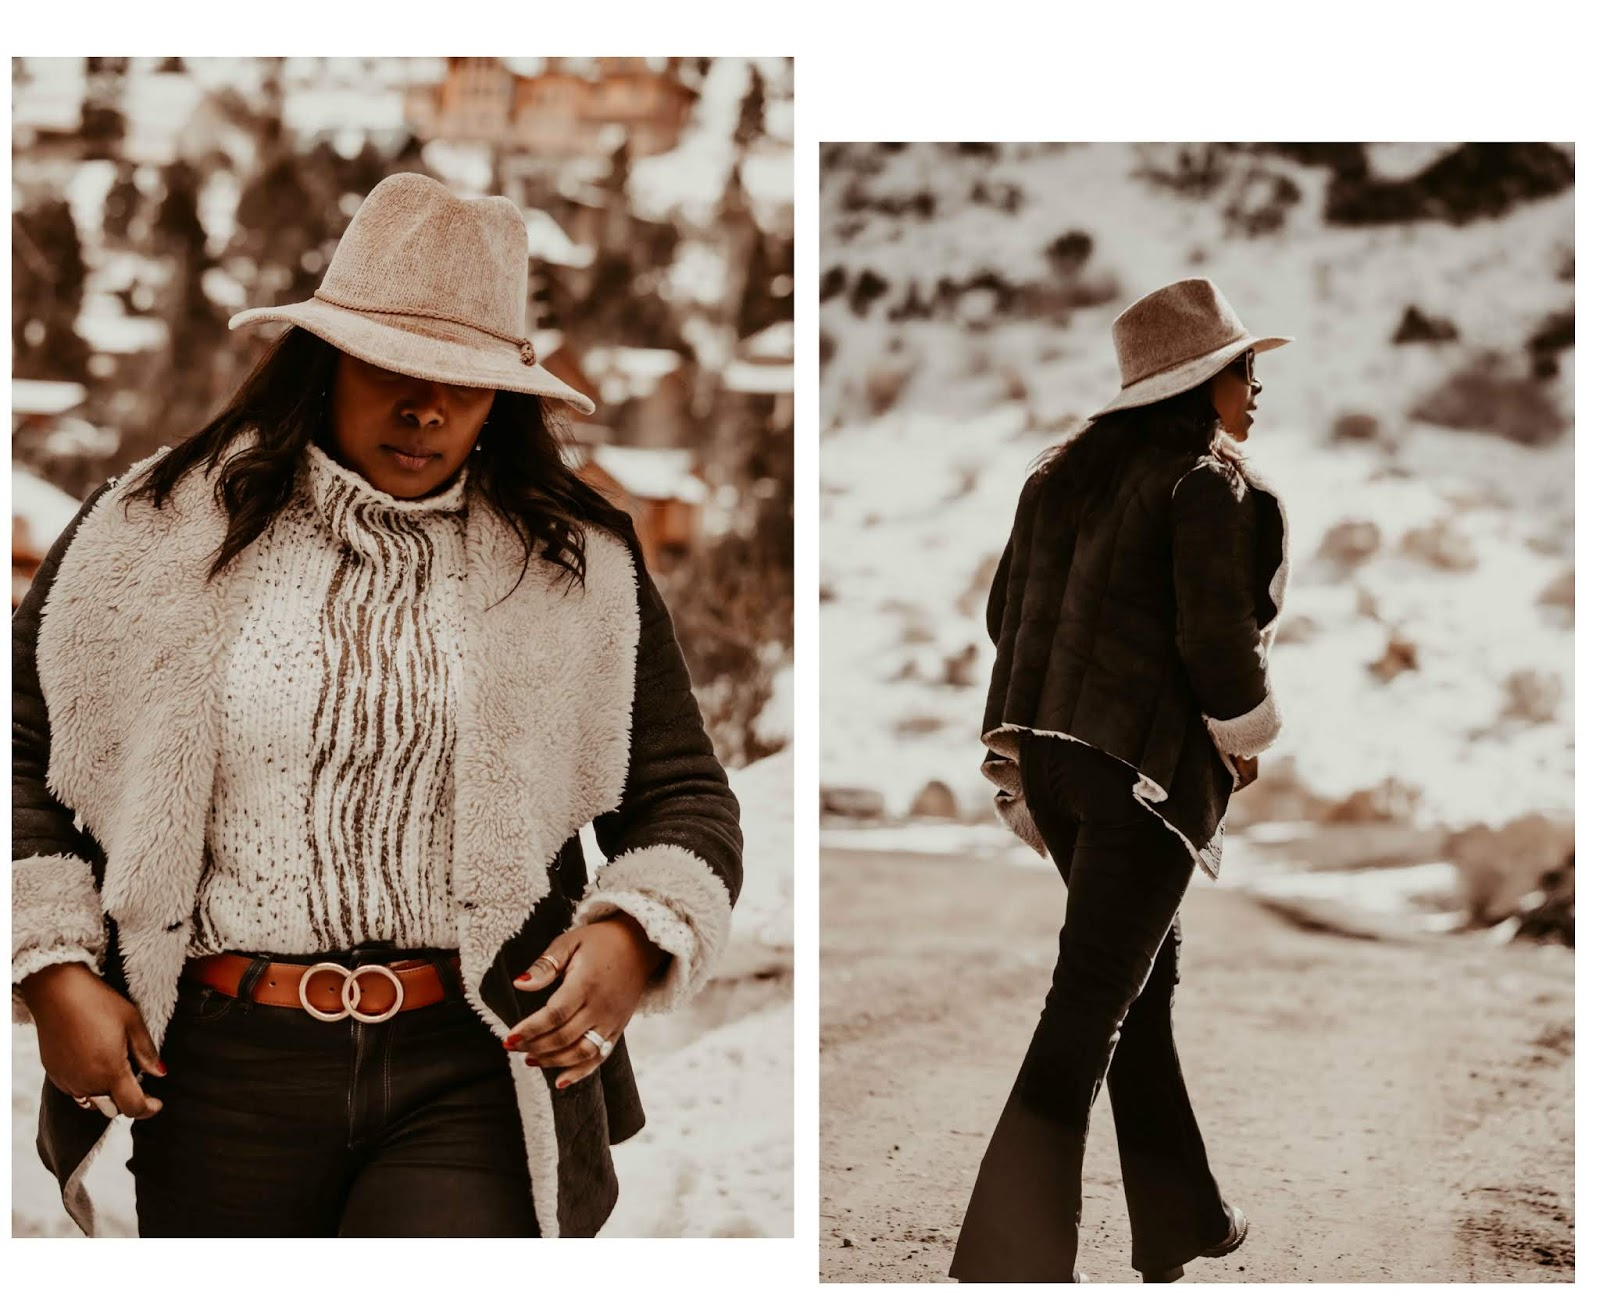 cowgirl-paige-denim-bootleg-jeans-pants-anthropologie-blush-plush-chenille-hat-guess-double-ring-belt-vintage-cateye-sunglasses-at-snowy-mount-charleston-lasvegas-nv